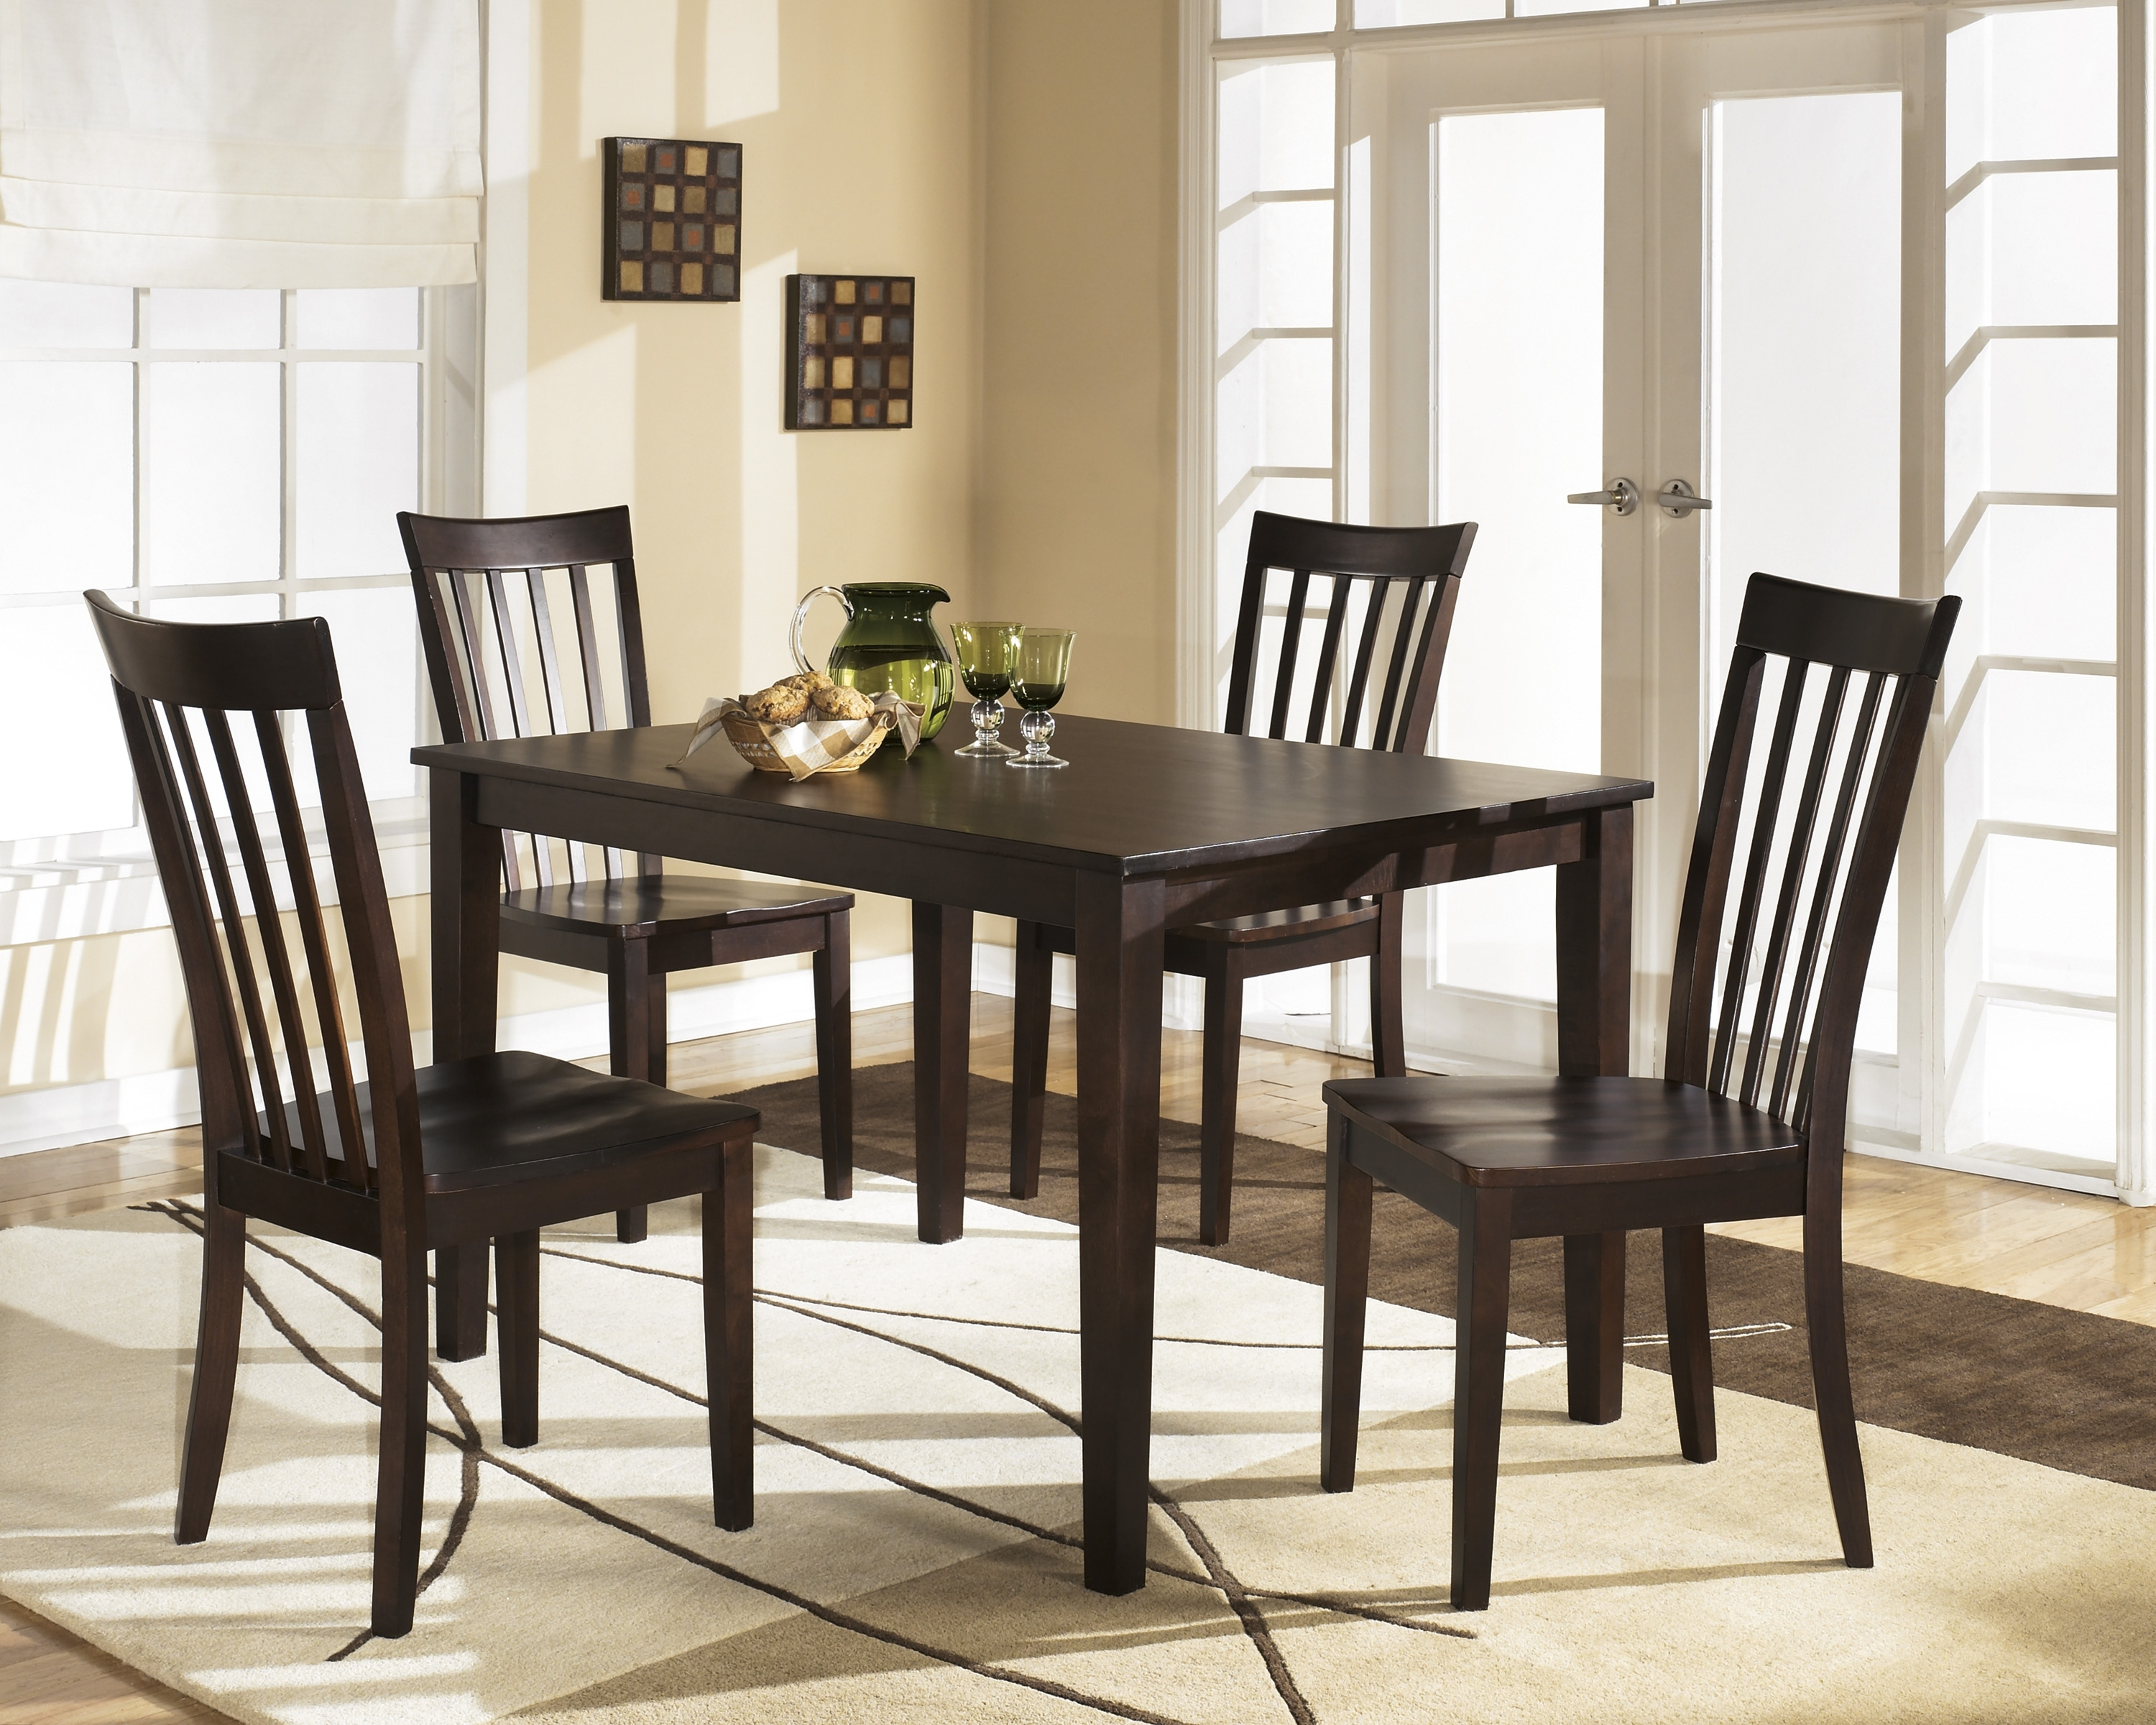 Https://www.localfurnitureoutlet/mattresses.html 2018-07-18 pertaining to Most Recent Palazzo 9 Piece Dining Sets With Pearson White Side Chairs